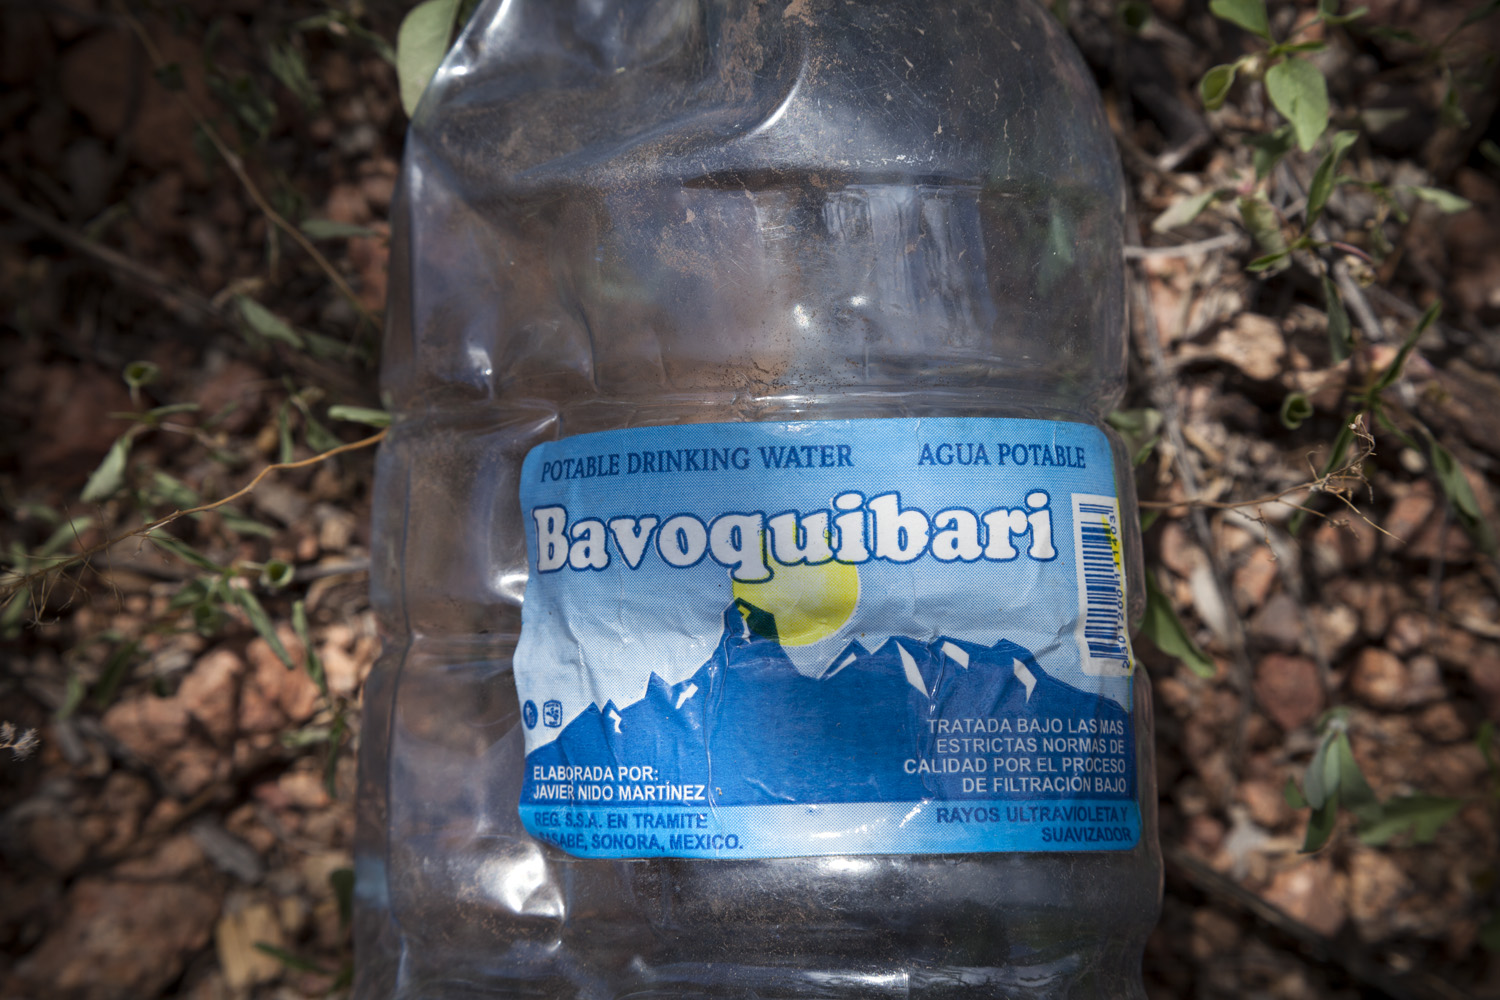 Bavoquibari Bottle, 2012 - Water bottle depicting Bavoquibari Mountains, which migrants use to navigate.